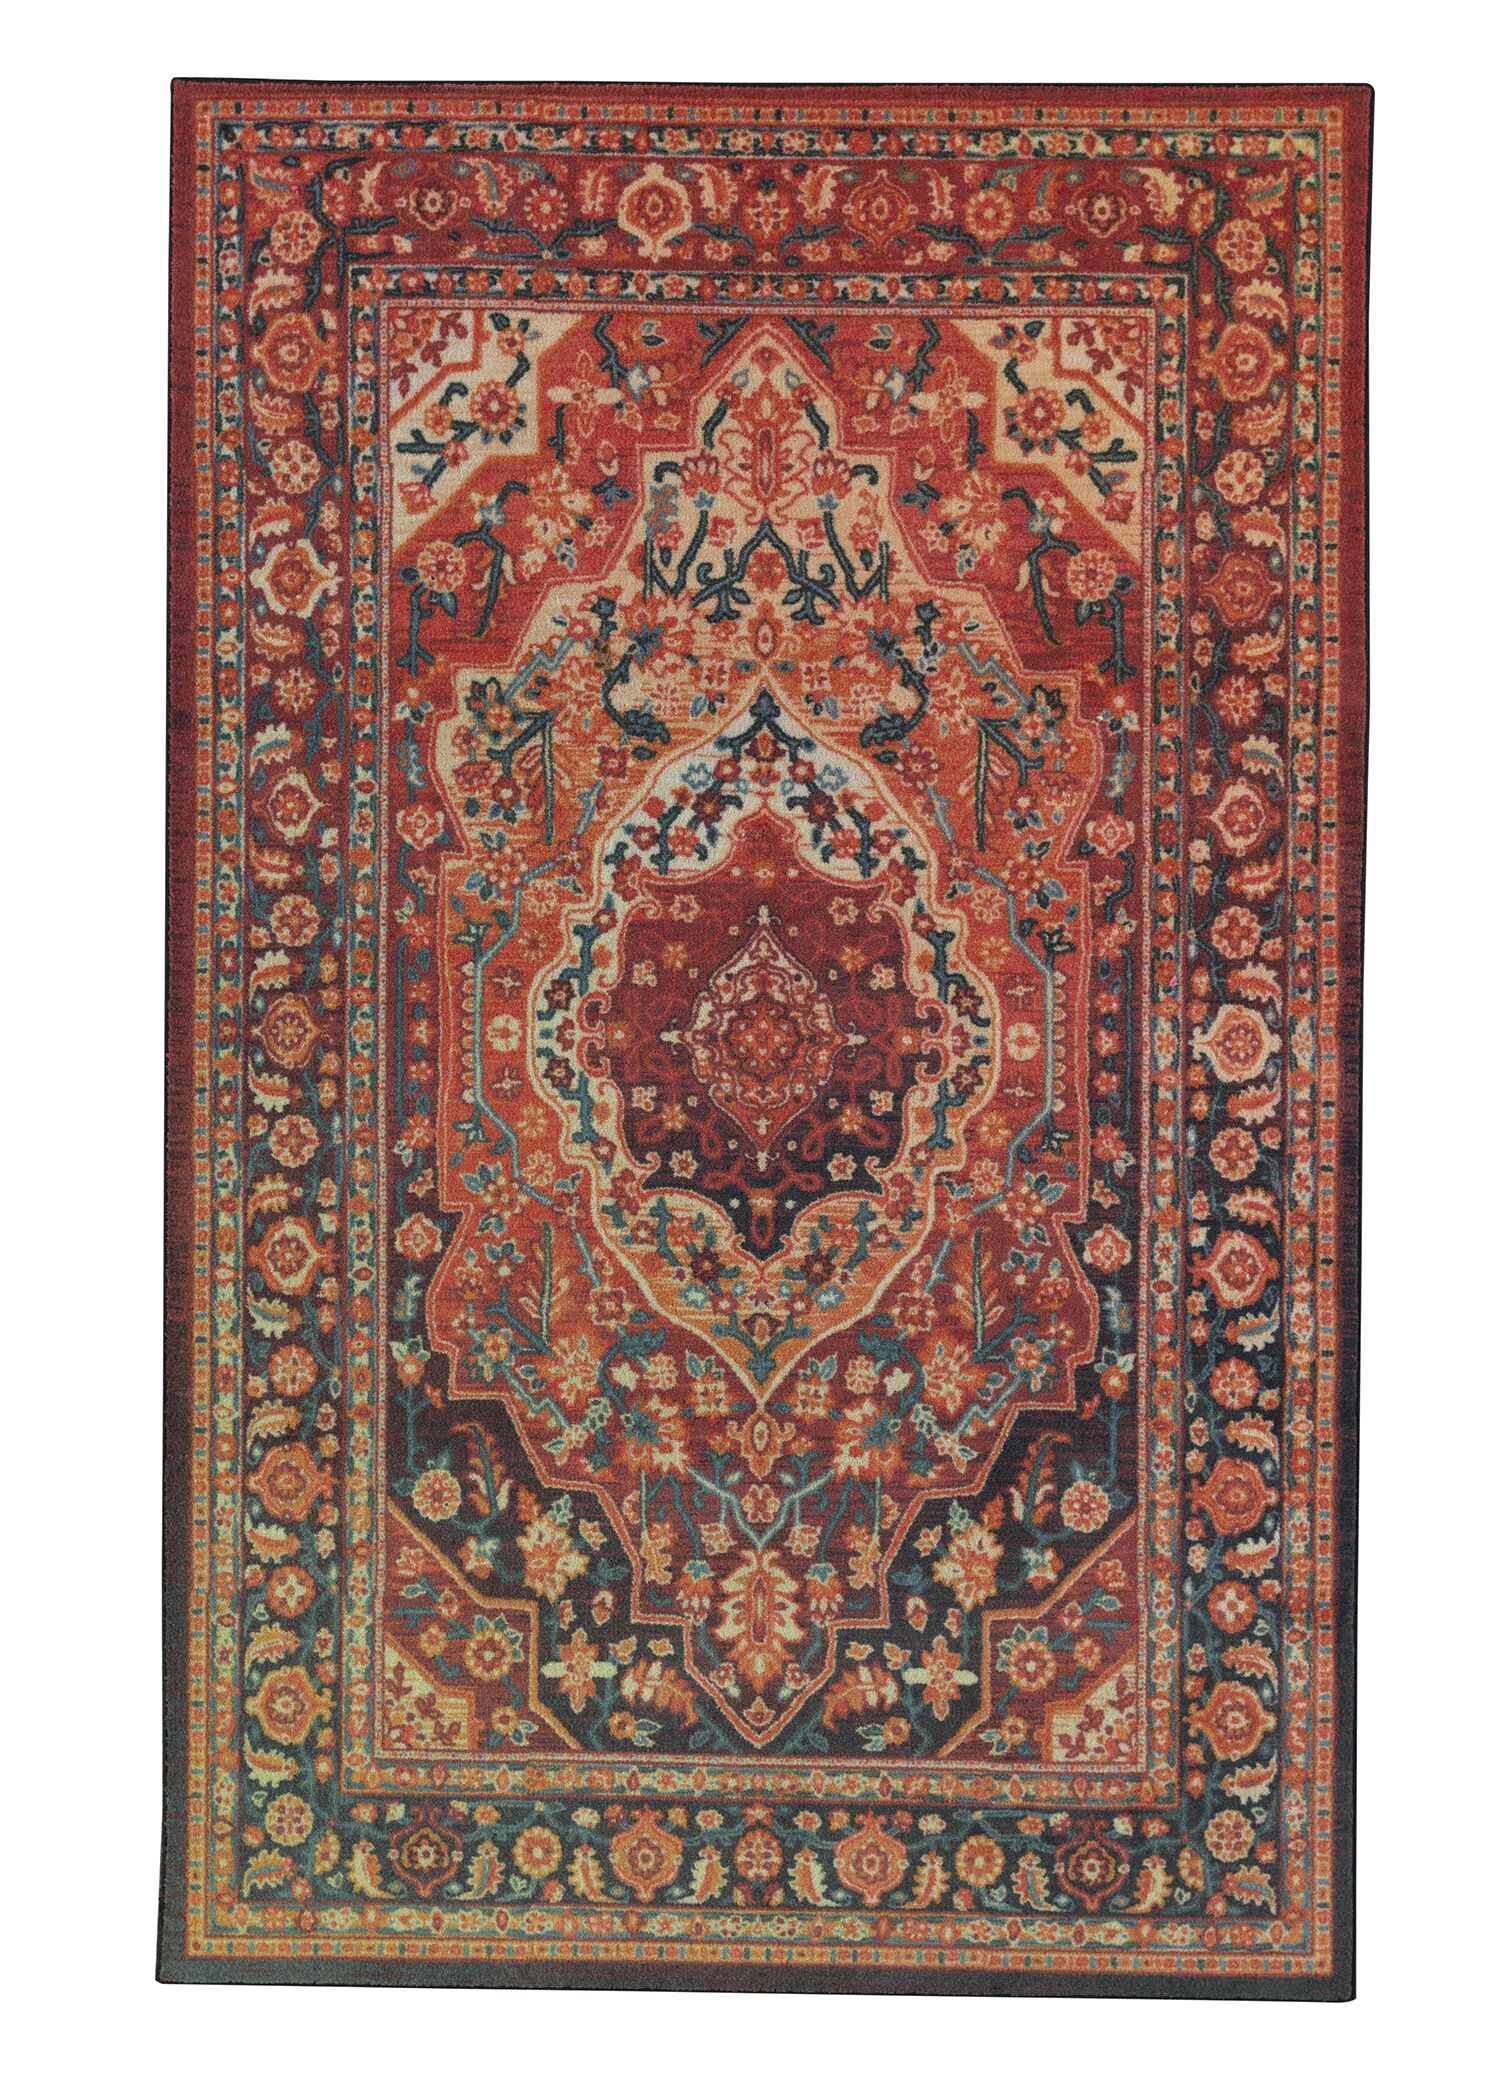 Clement Tangerine Red Area Rug Rug Size: Rectangle 5 'x 8'